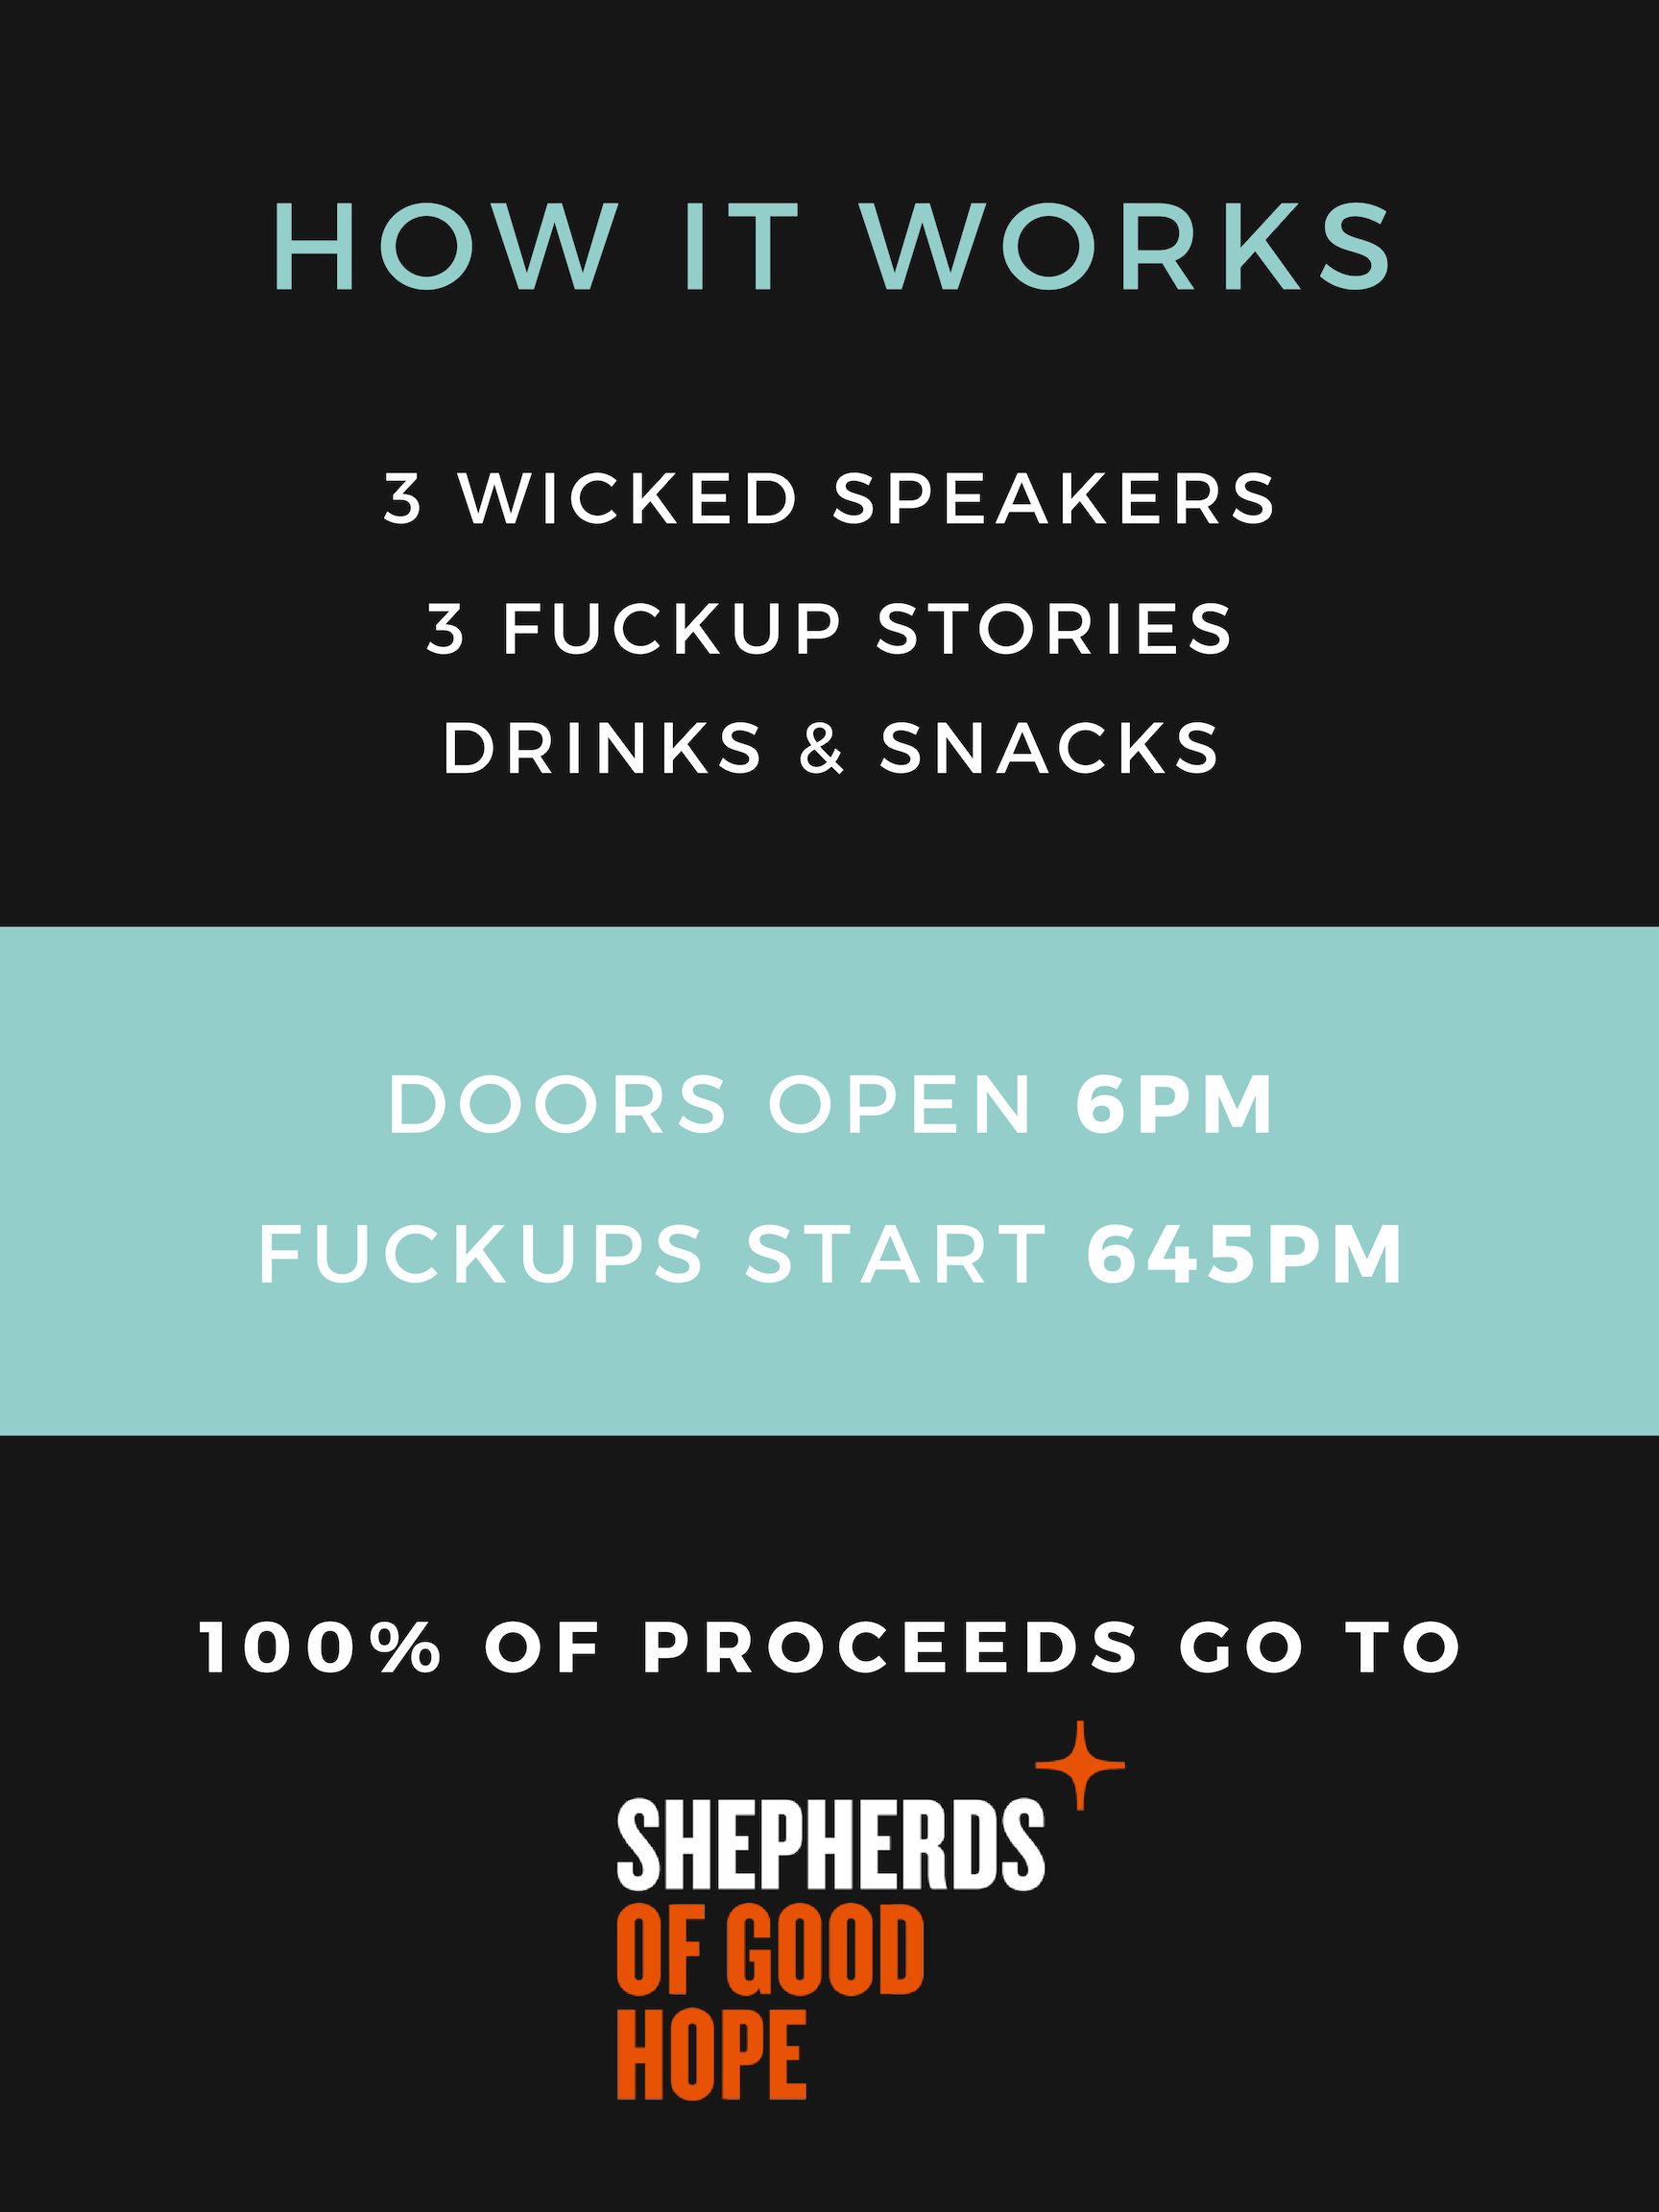 How it works - 3 speakers, 3 fuckup stories, drinks and snacks. Doors open at 6pm. Fuckup starts at 645pm. 100% of proceeds go to Shepherds of Good Hope.